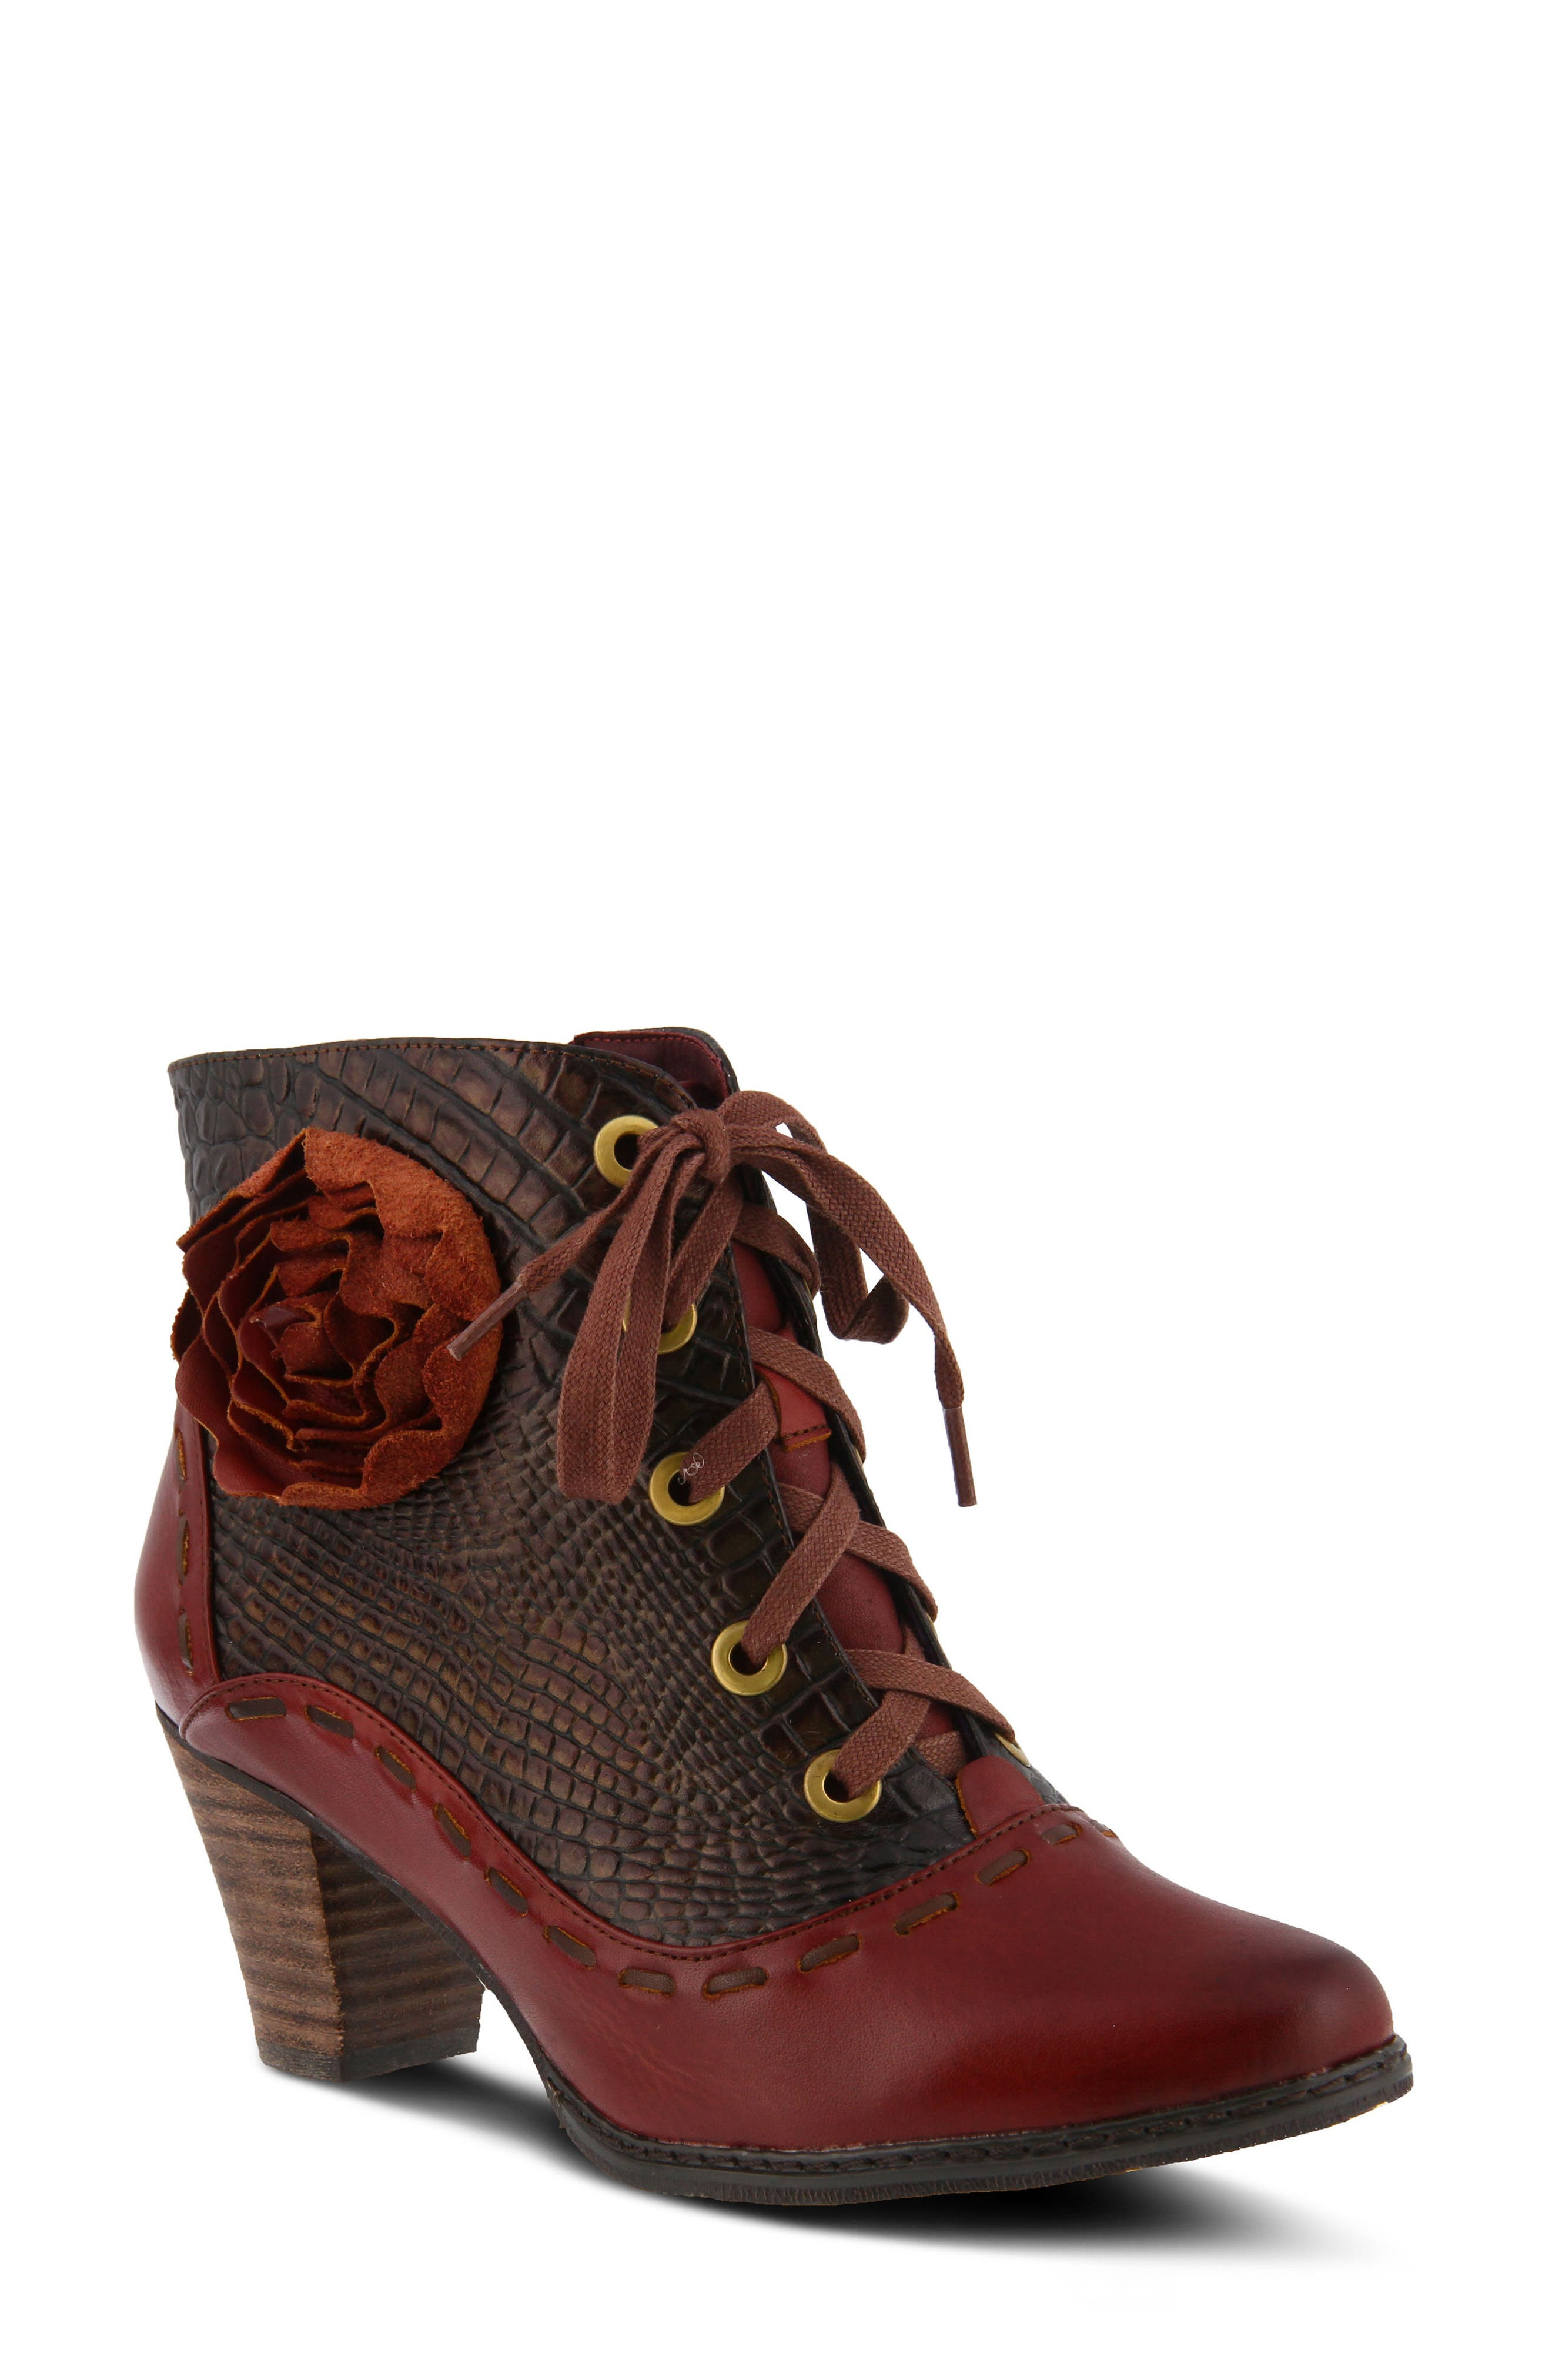 L'Artiste Sufi Bootie,                         Main,                         color, BORDEAUX LEATHER